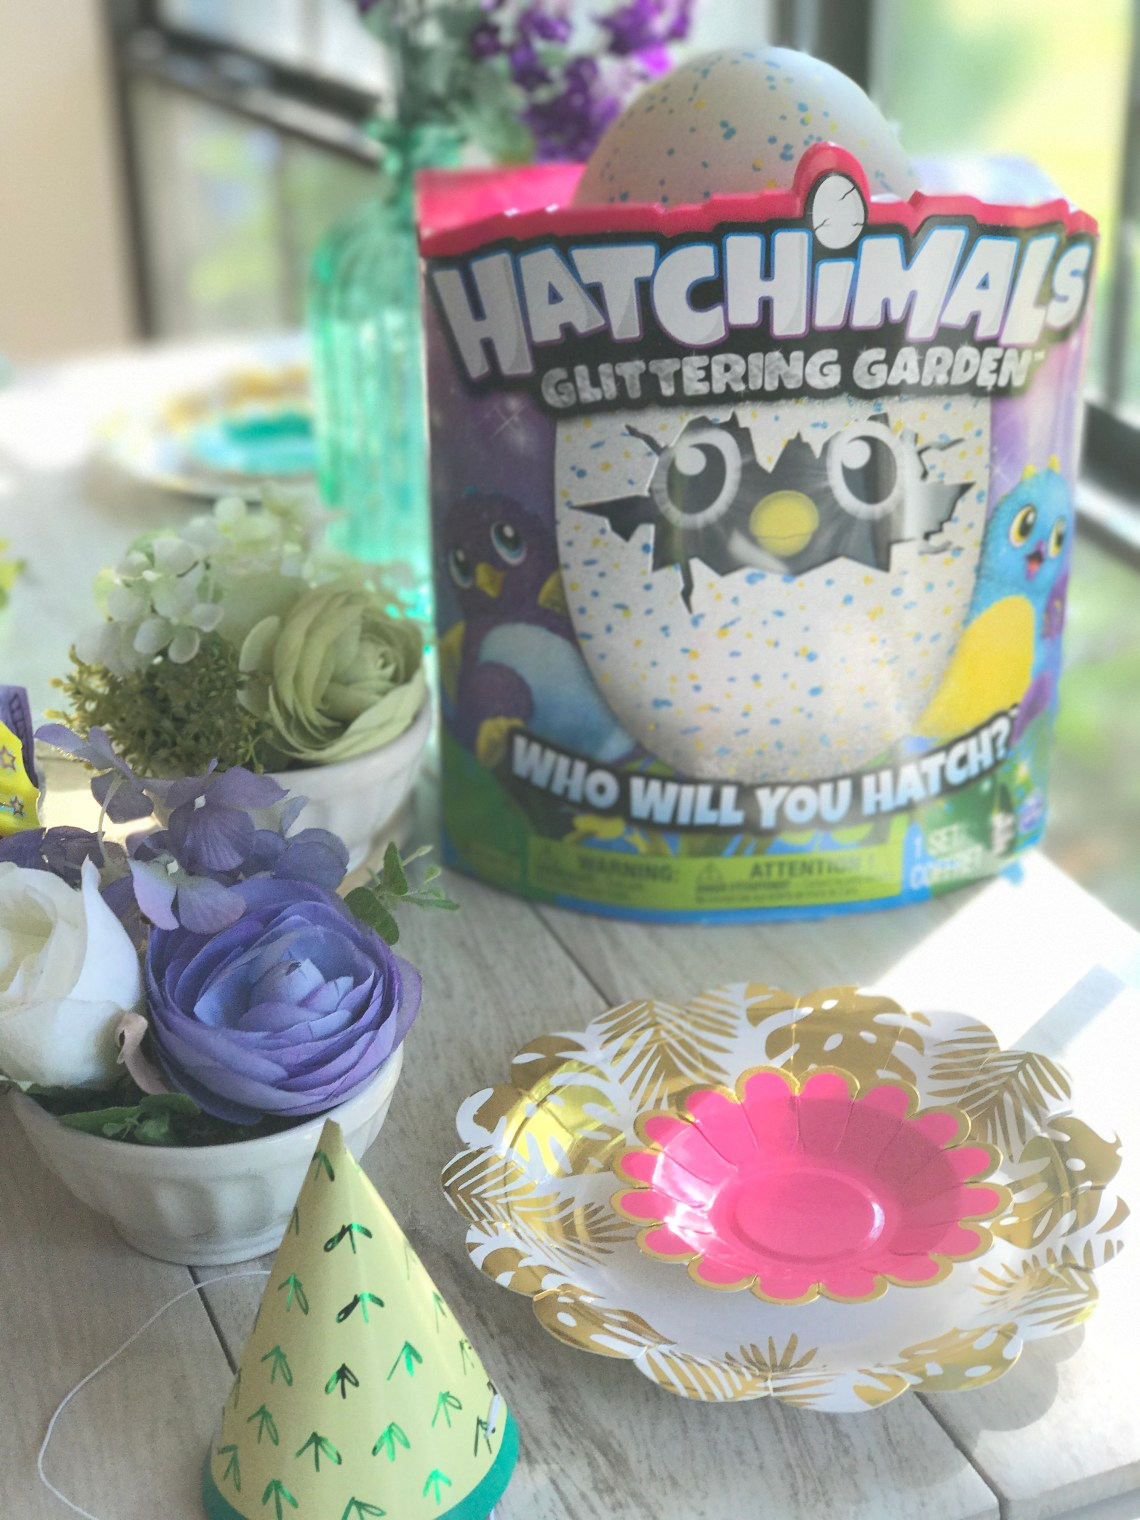 Hatchimals Glittering Garden Party - How to Throw One + Our Toy Review of this 2017 Popular Kids Toy